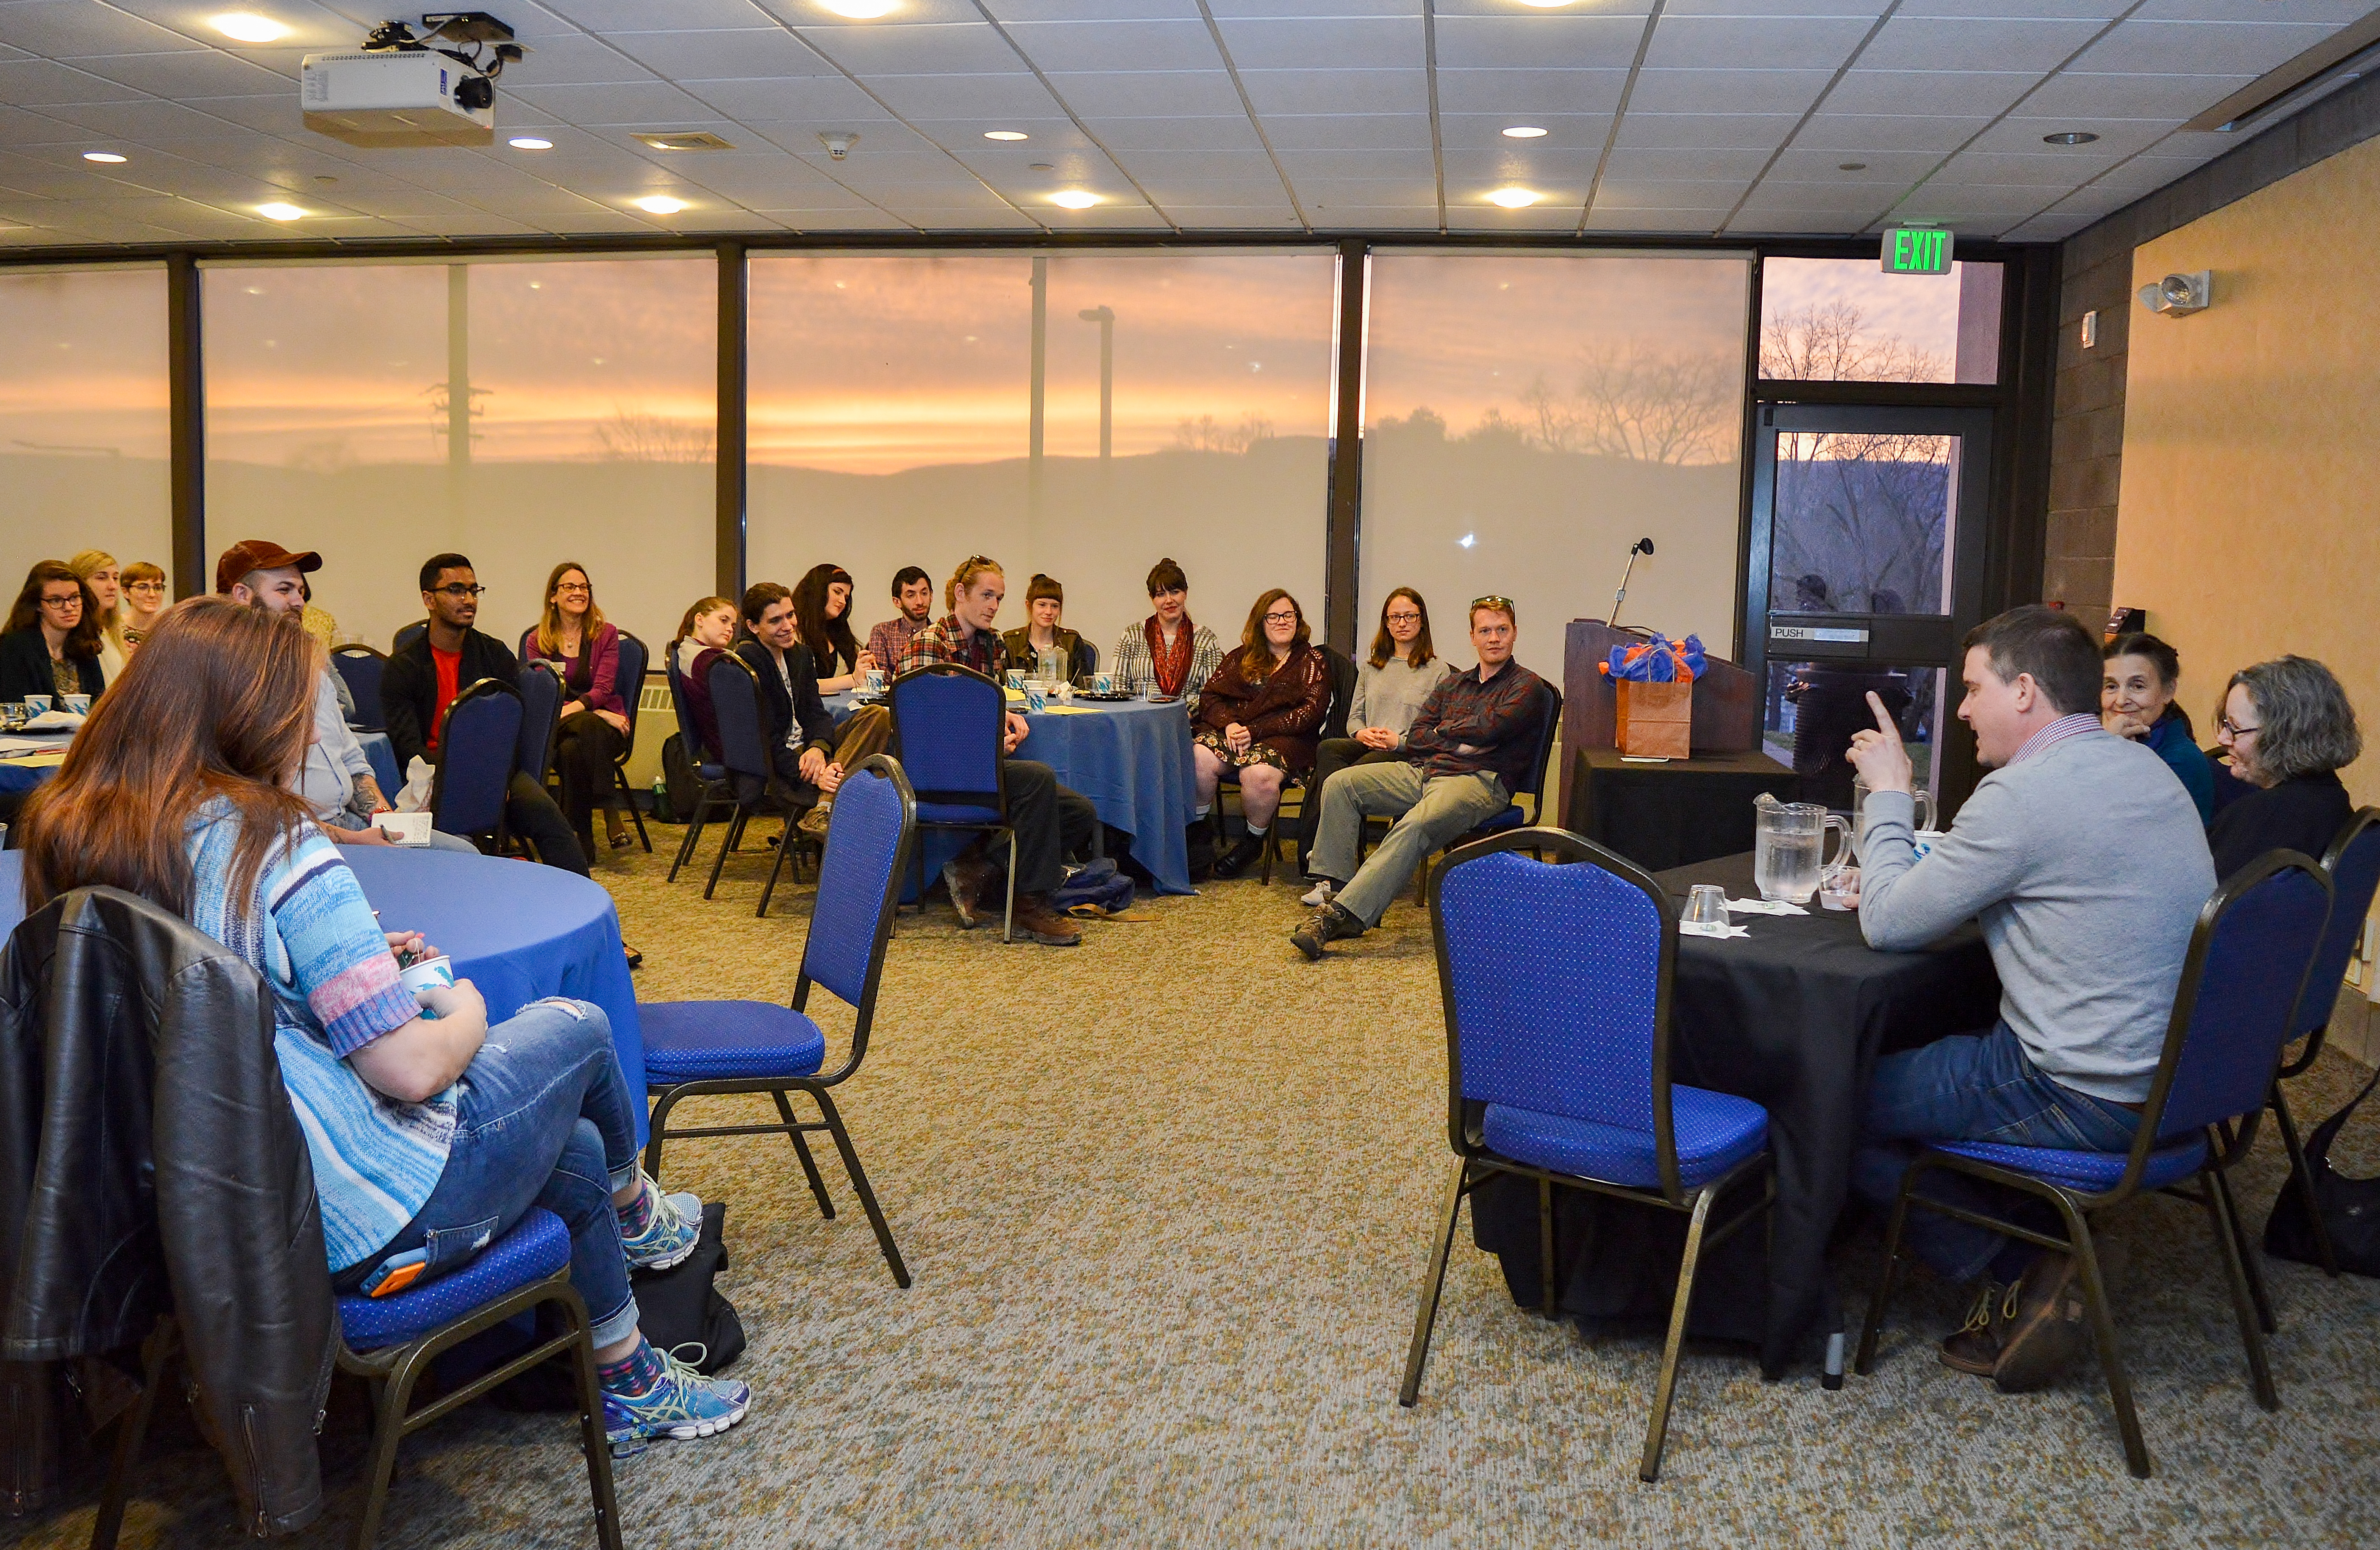 A beautiful sunset is the backdrop for a wonder evening discussion by alumni about career paths for art history majors